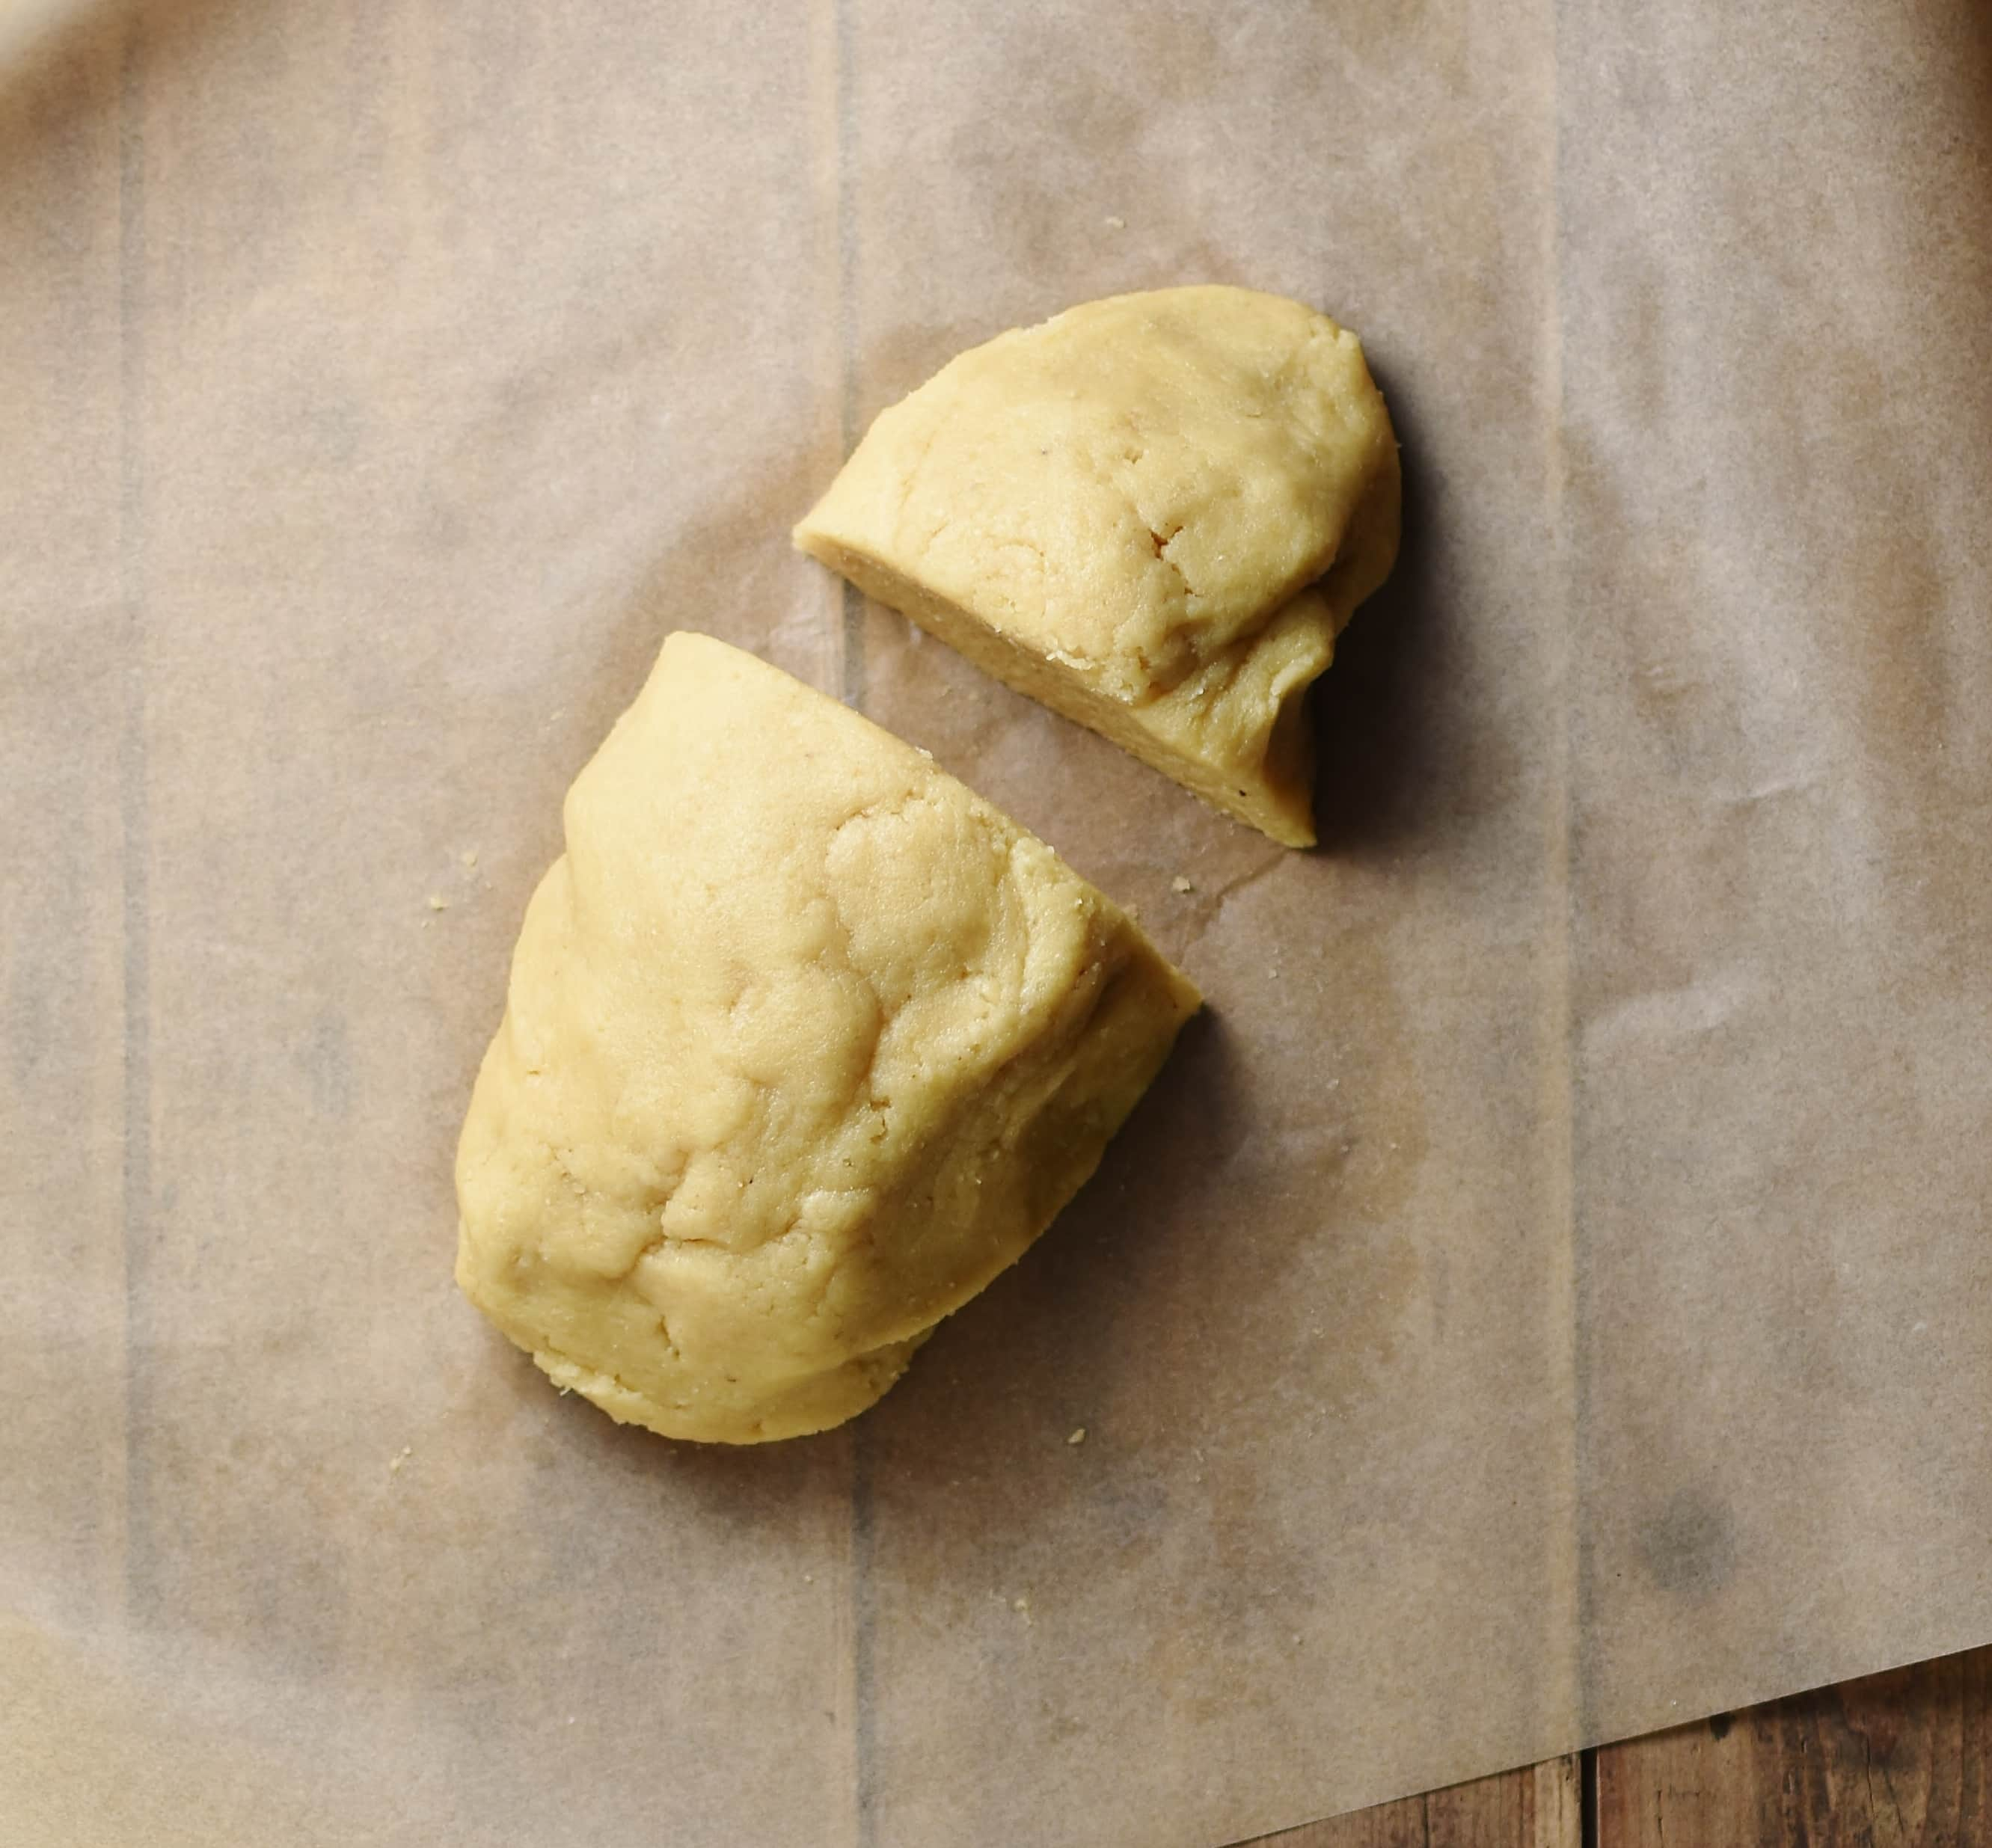 Cake dough divided into 2 parts on top of parchment paper.